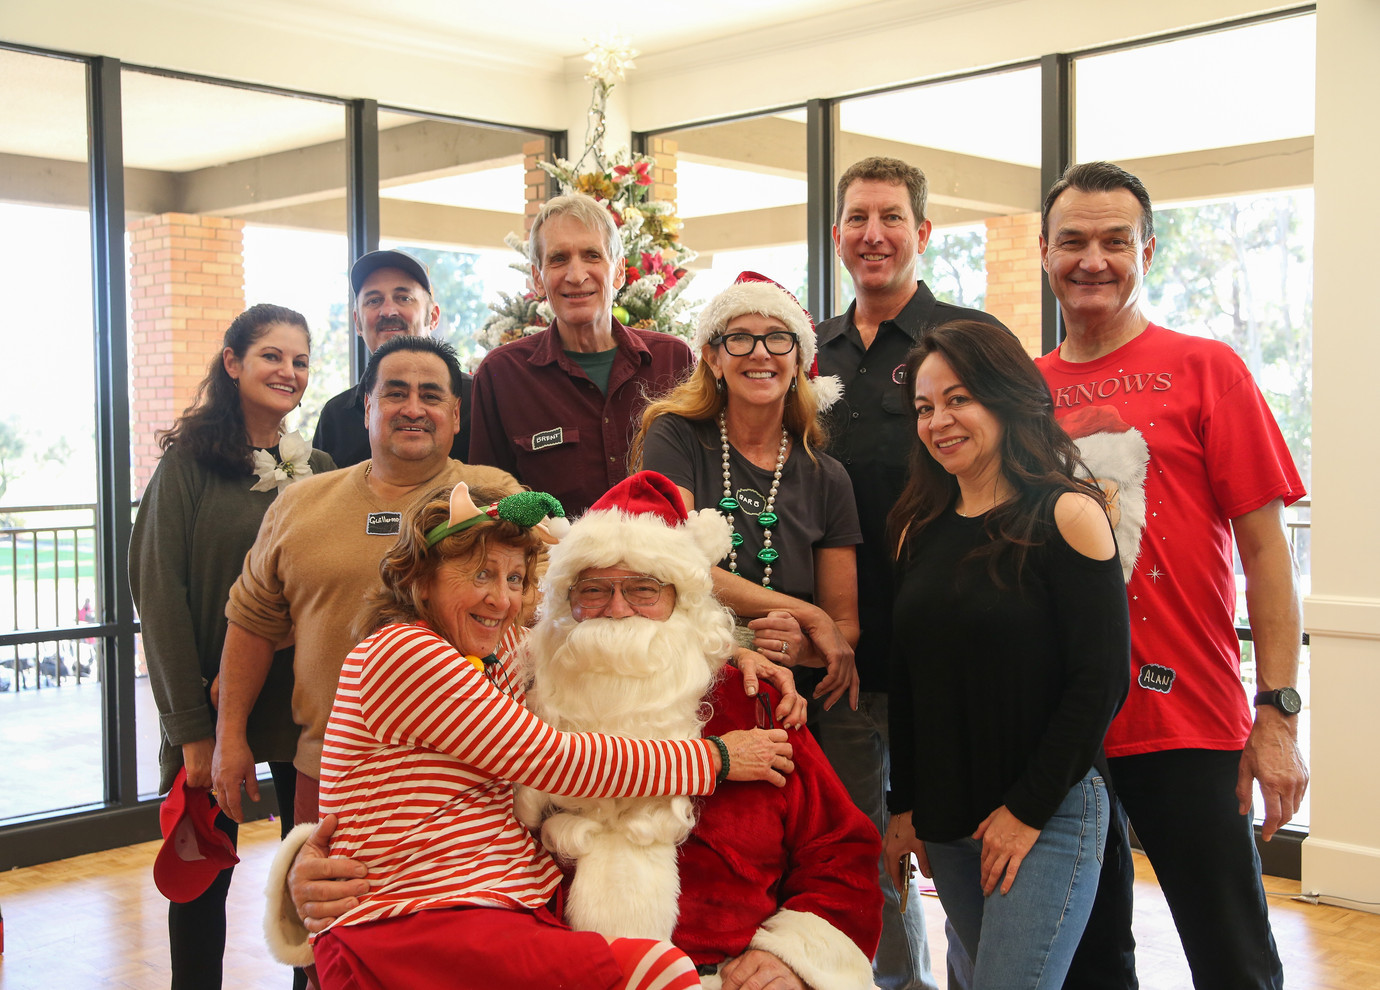 Susan & Tom Neas, Brent Kahlen, event chair Troy Davis, Al Freeman, Guillermo, event co-chair Barbara Davis, Angela (NMUSD), Elf Judy and Santa Claus